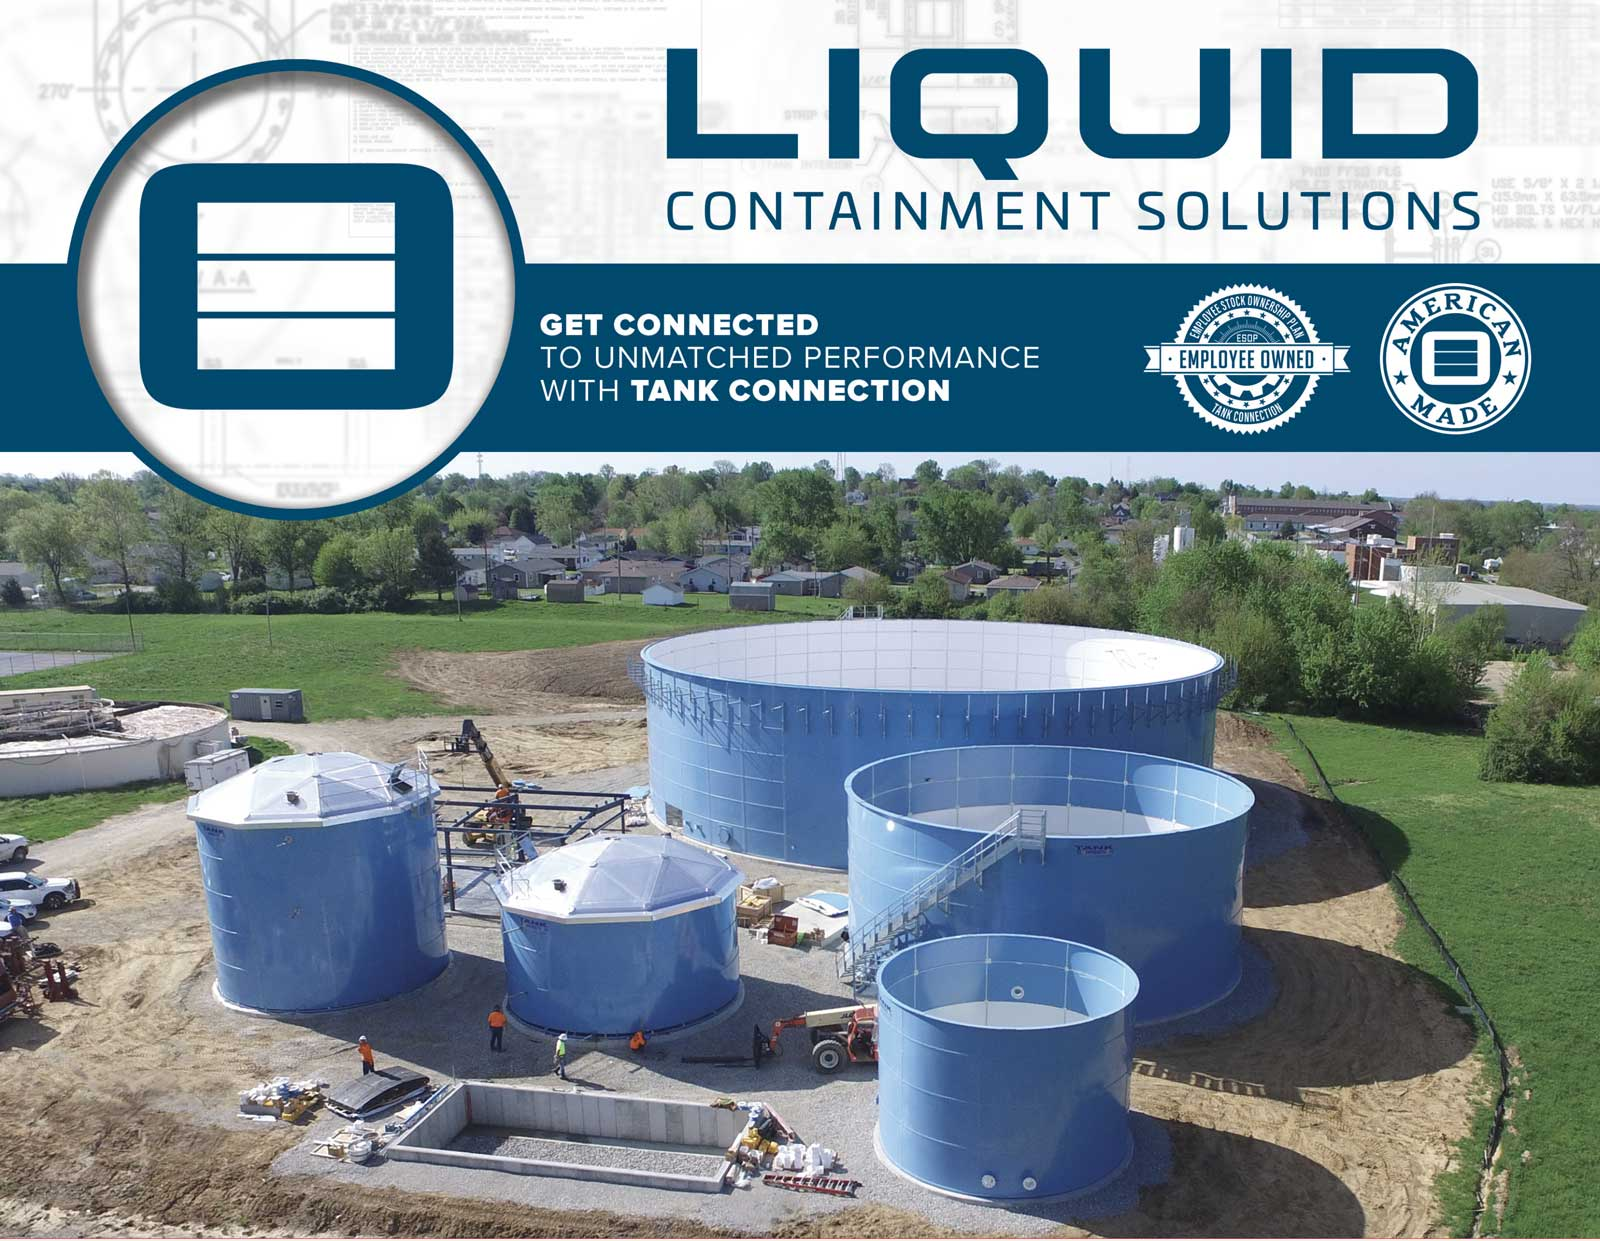 Liquid Containment Solutions